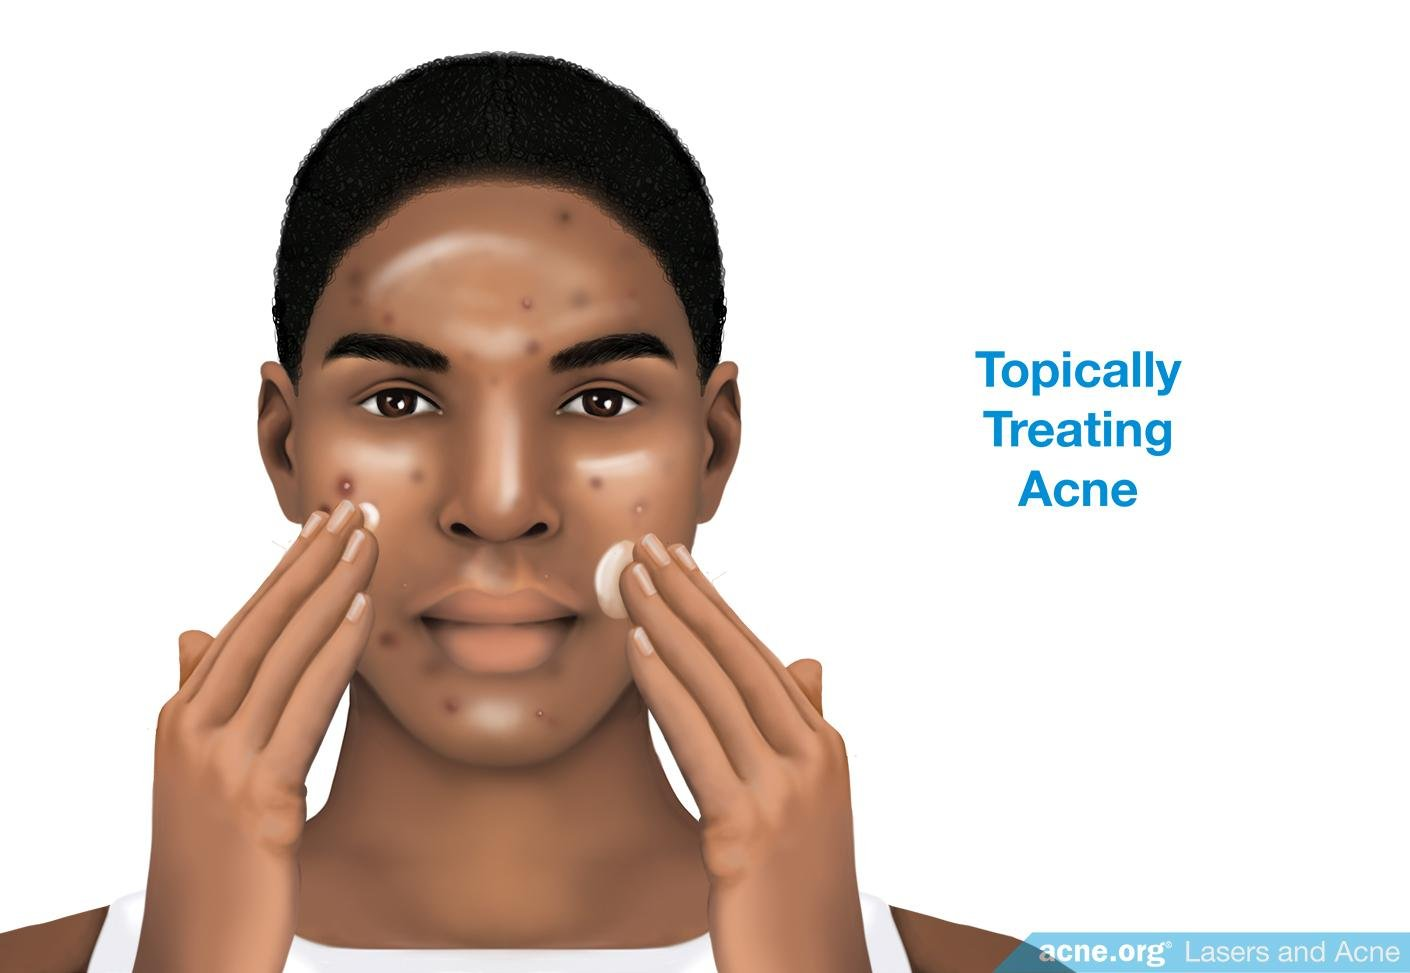 Topically Treating Acne